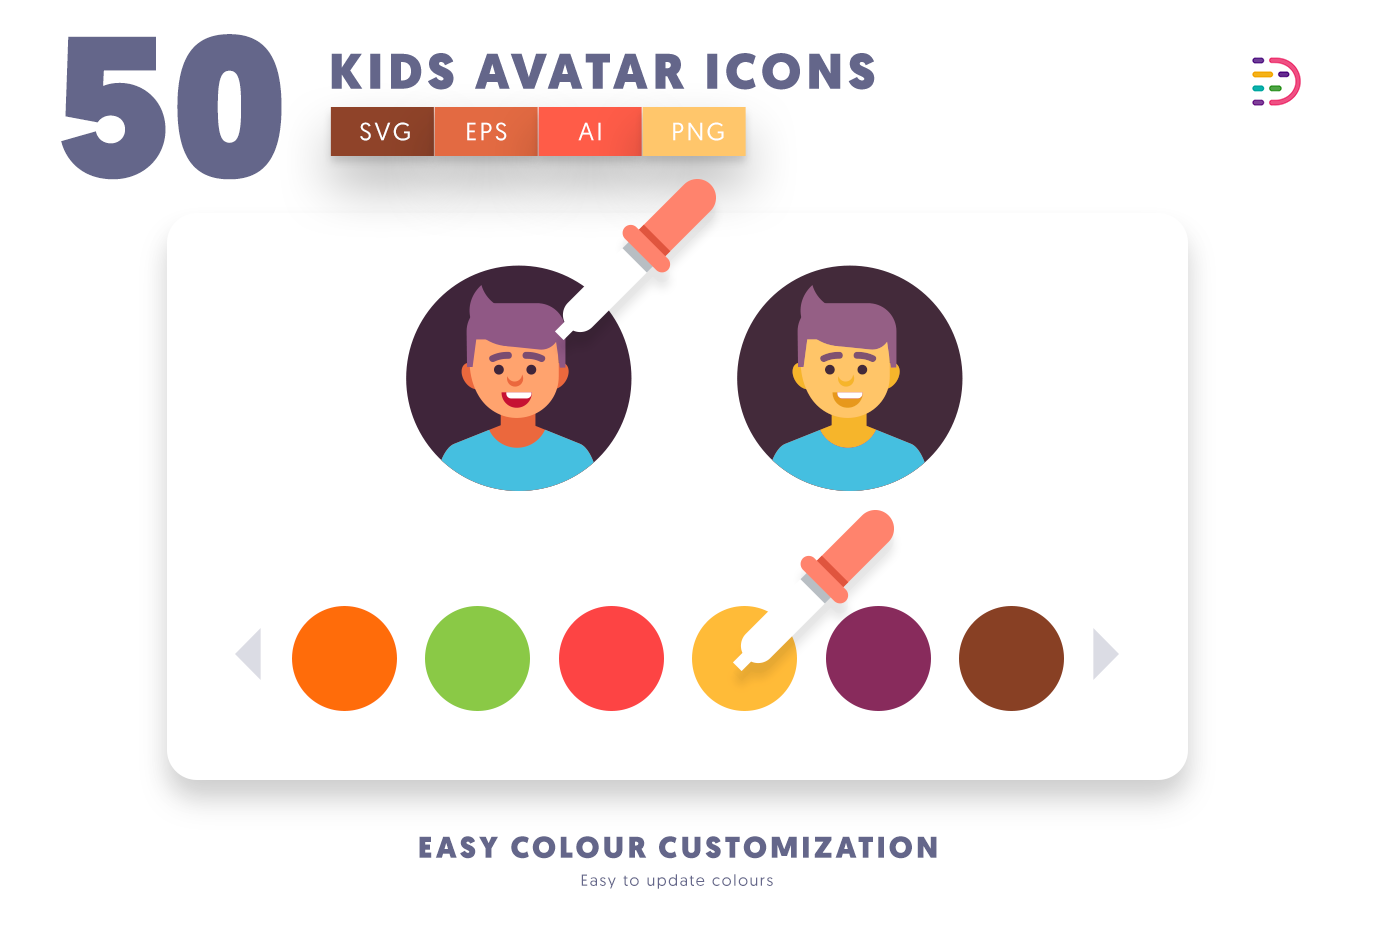 EPS, SVG, PNG full vector 50 Kids Avatar Icons